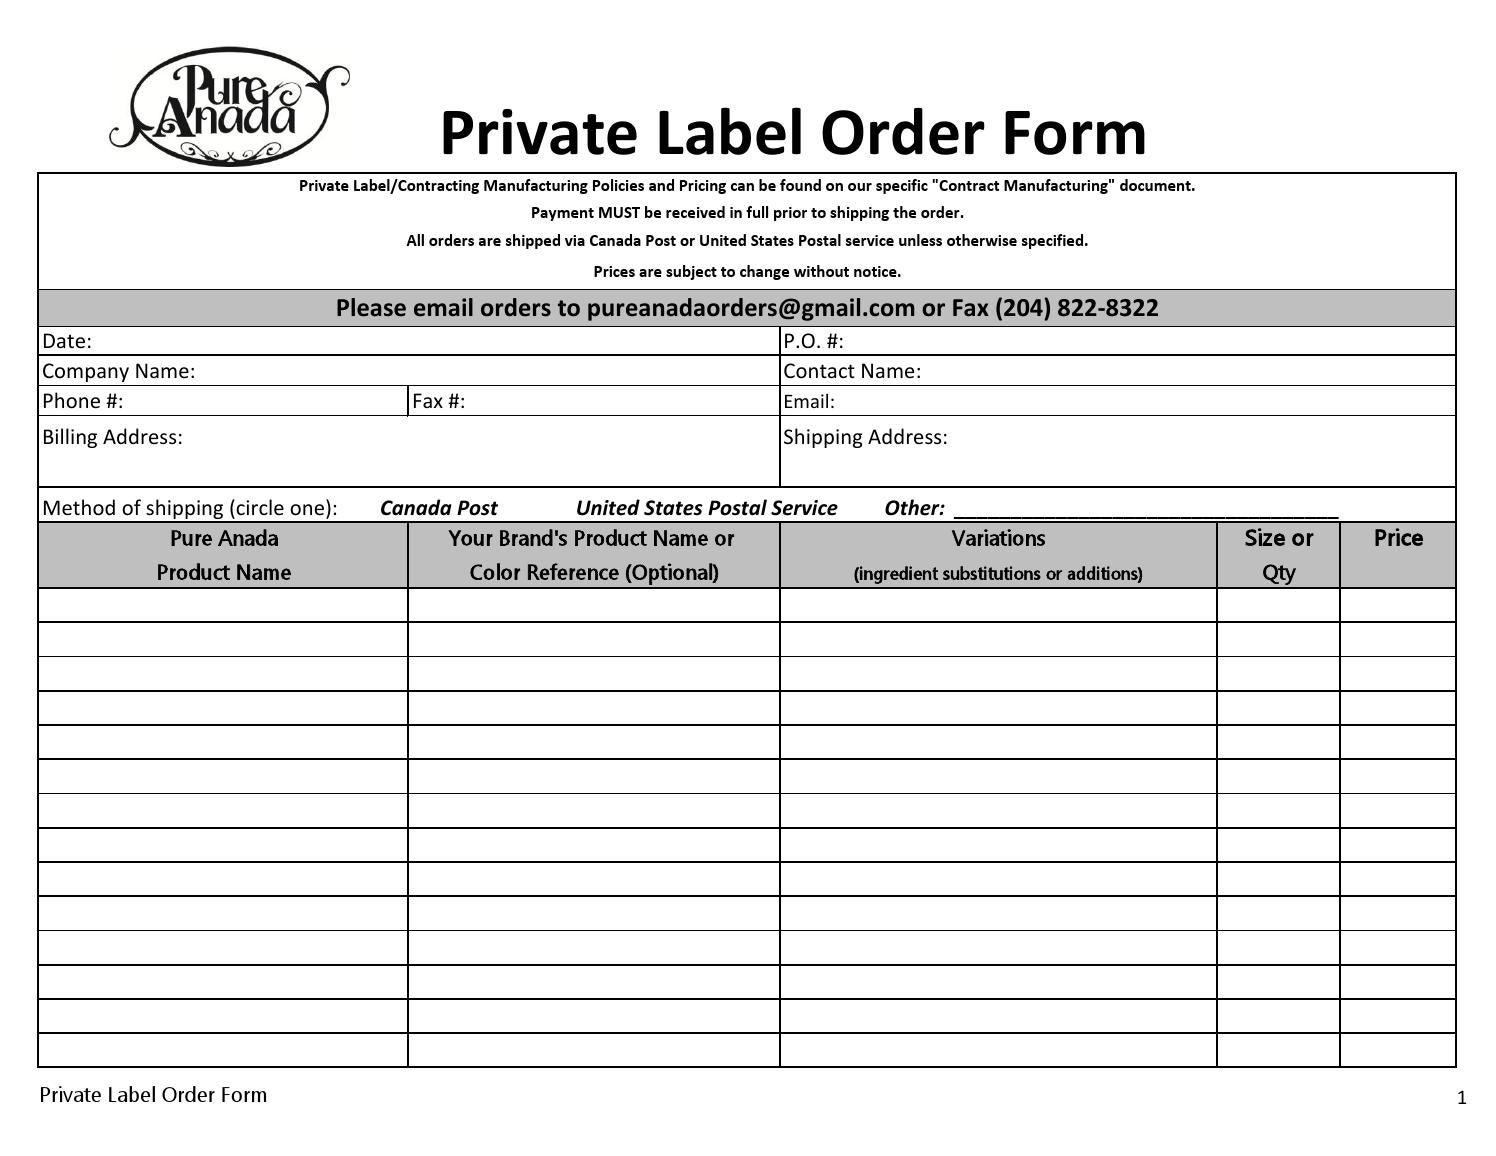 Private Label Order Form By Pure Anada Cosmetics   Issuu